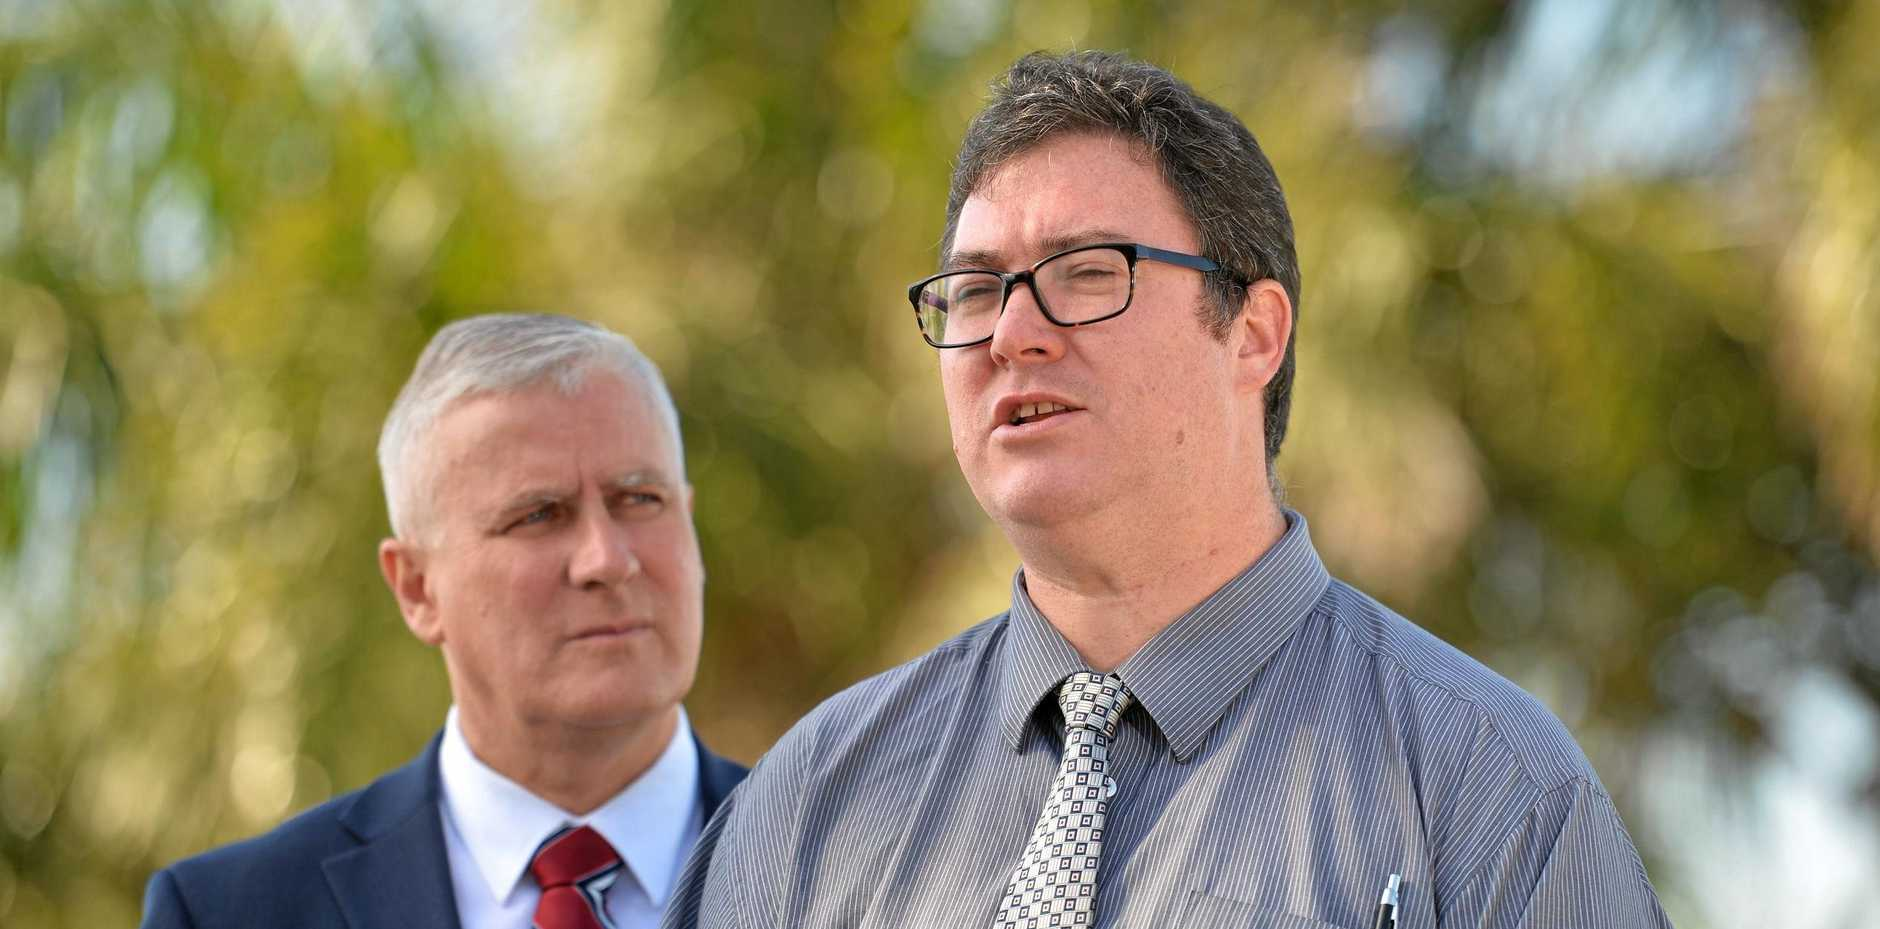 Deputy Prime Minister Michael McCormack and Dawson MP George Christensen at North Mackay Lookout